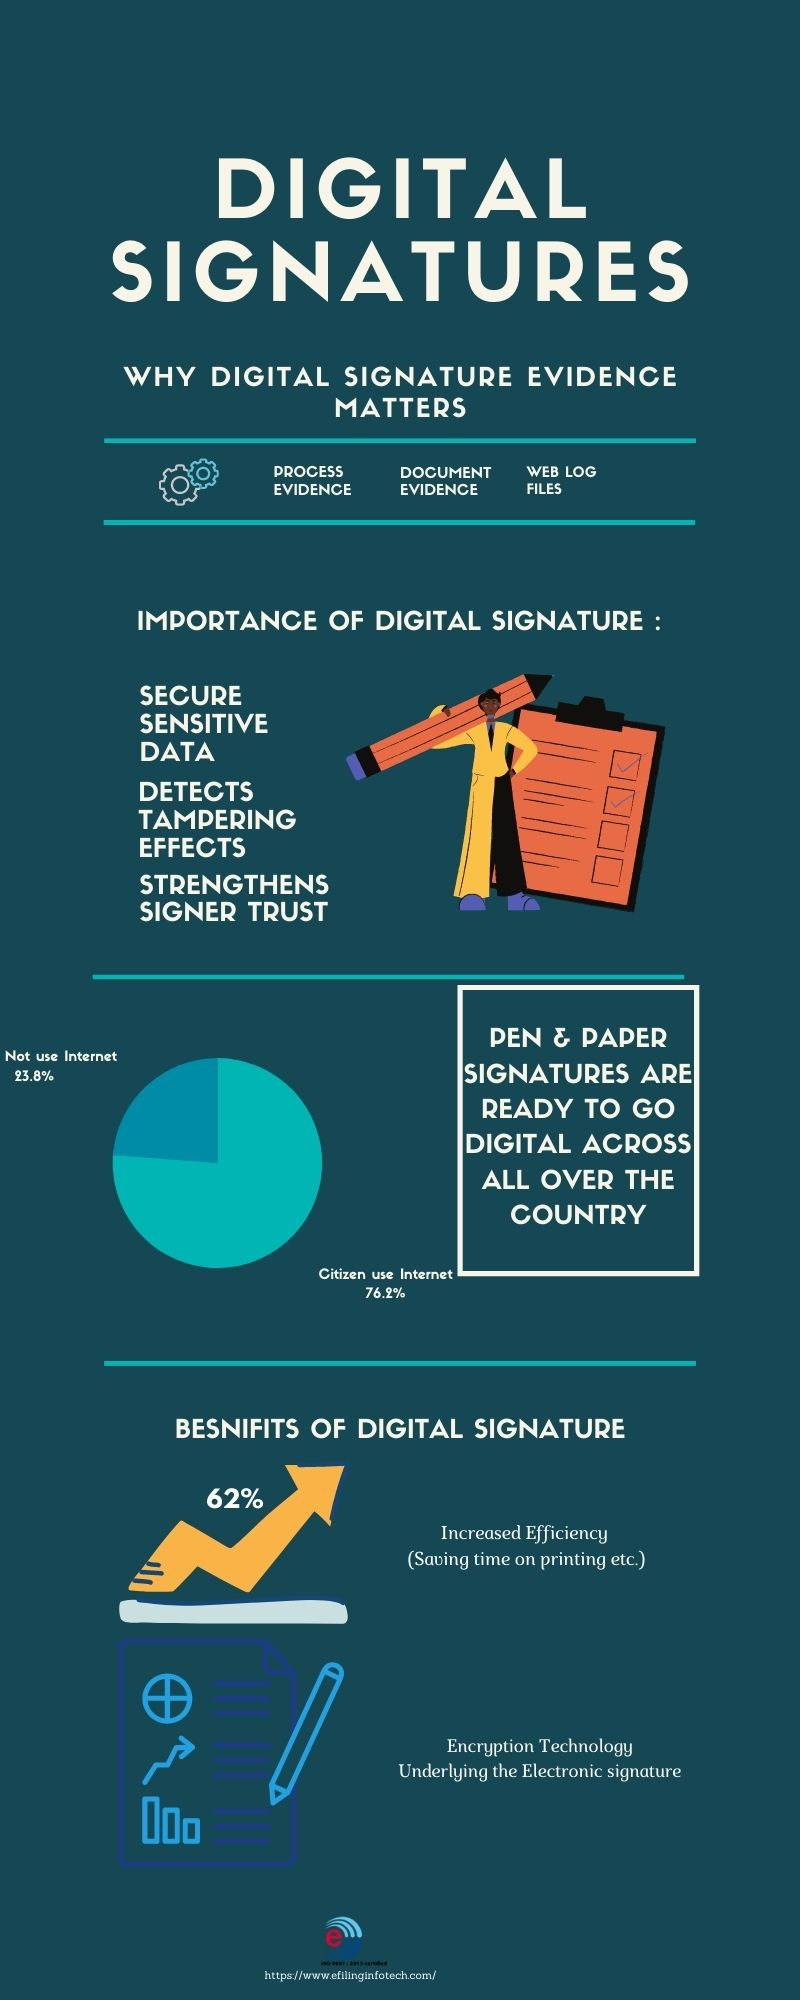 Why Digital signature evidence matters?